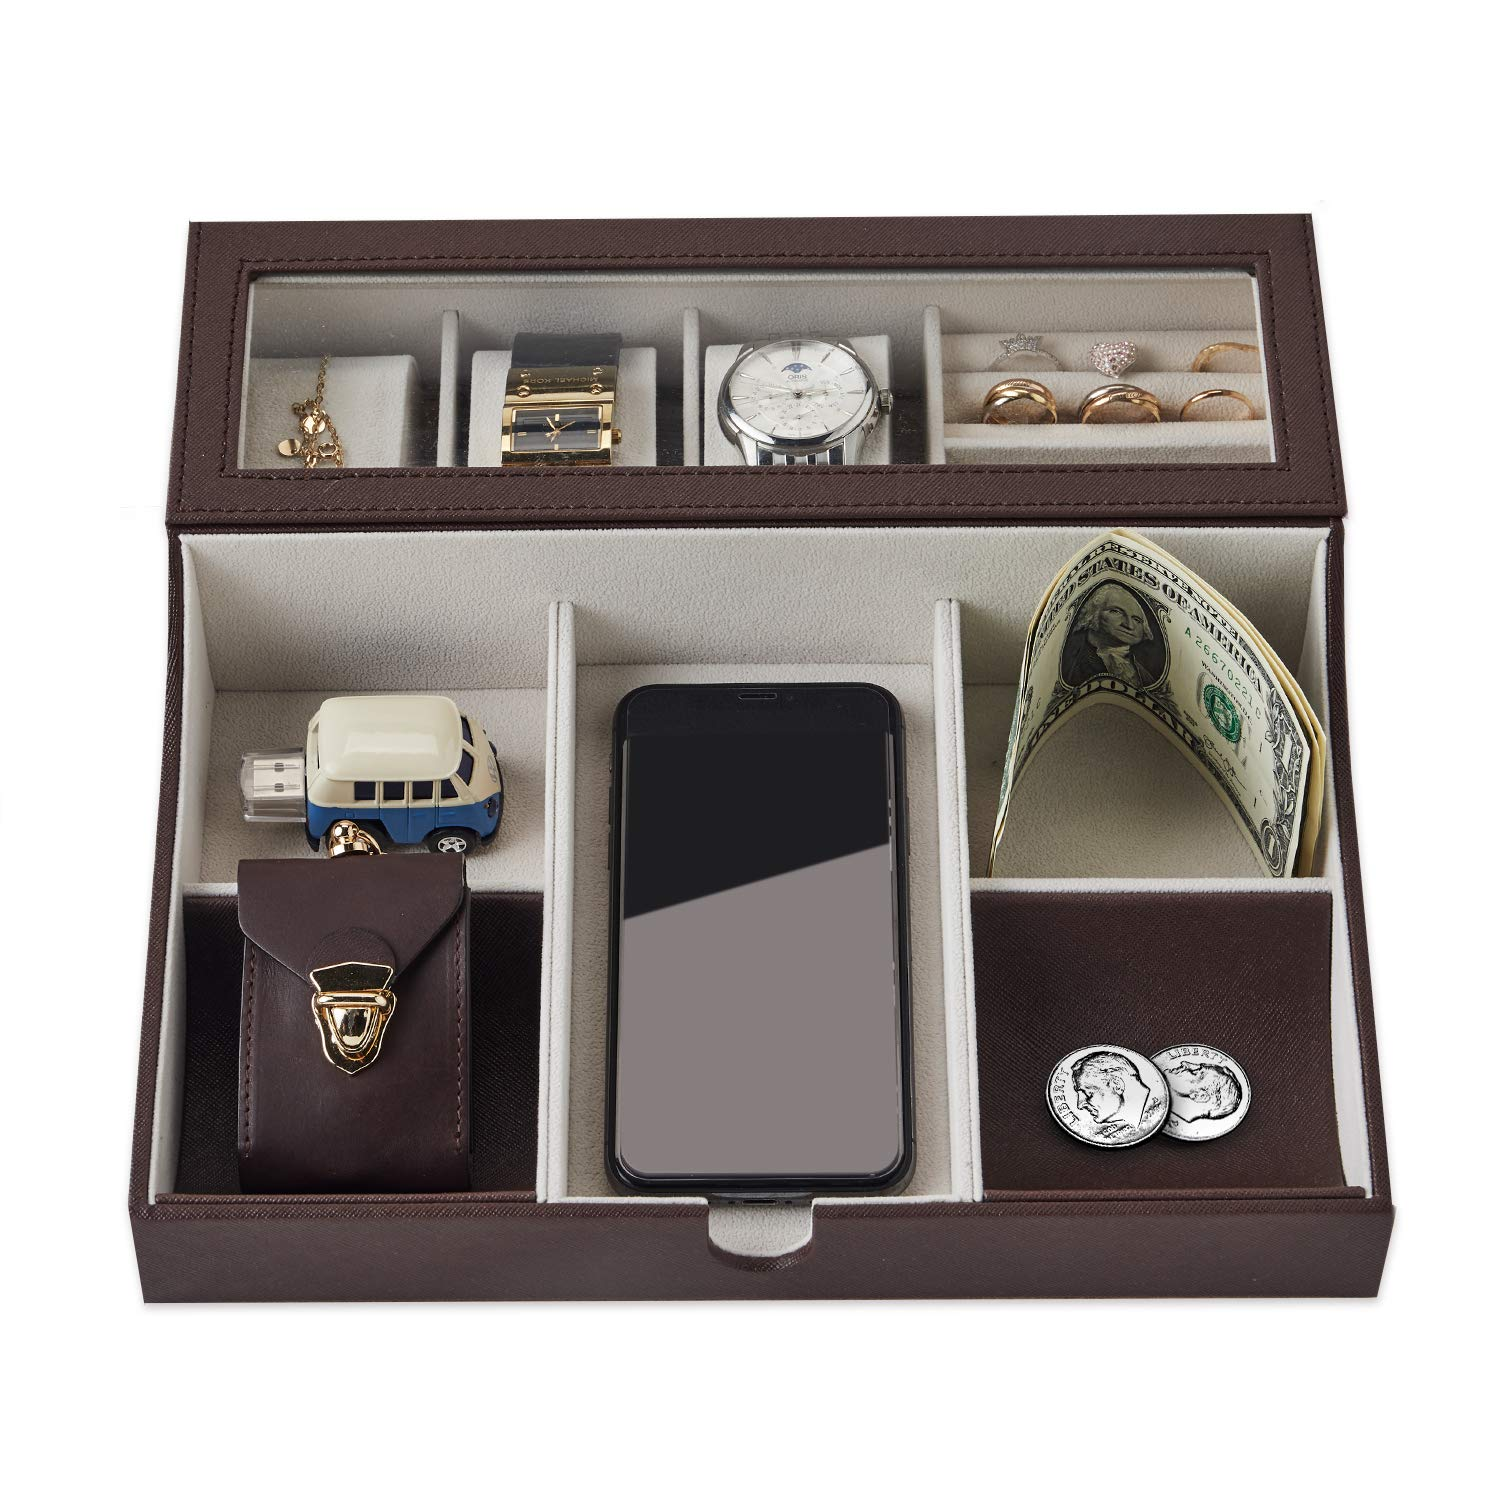 NEATOPA Valet Tray - Men Jewelry, Keys, Watch Nightstand Organizer for Perfect Life On Table Valet Box Made of Black PU Leather, Velvet with Charging Station (Dark Brown)